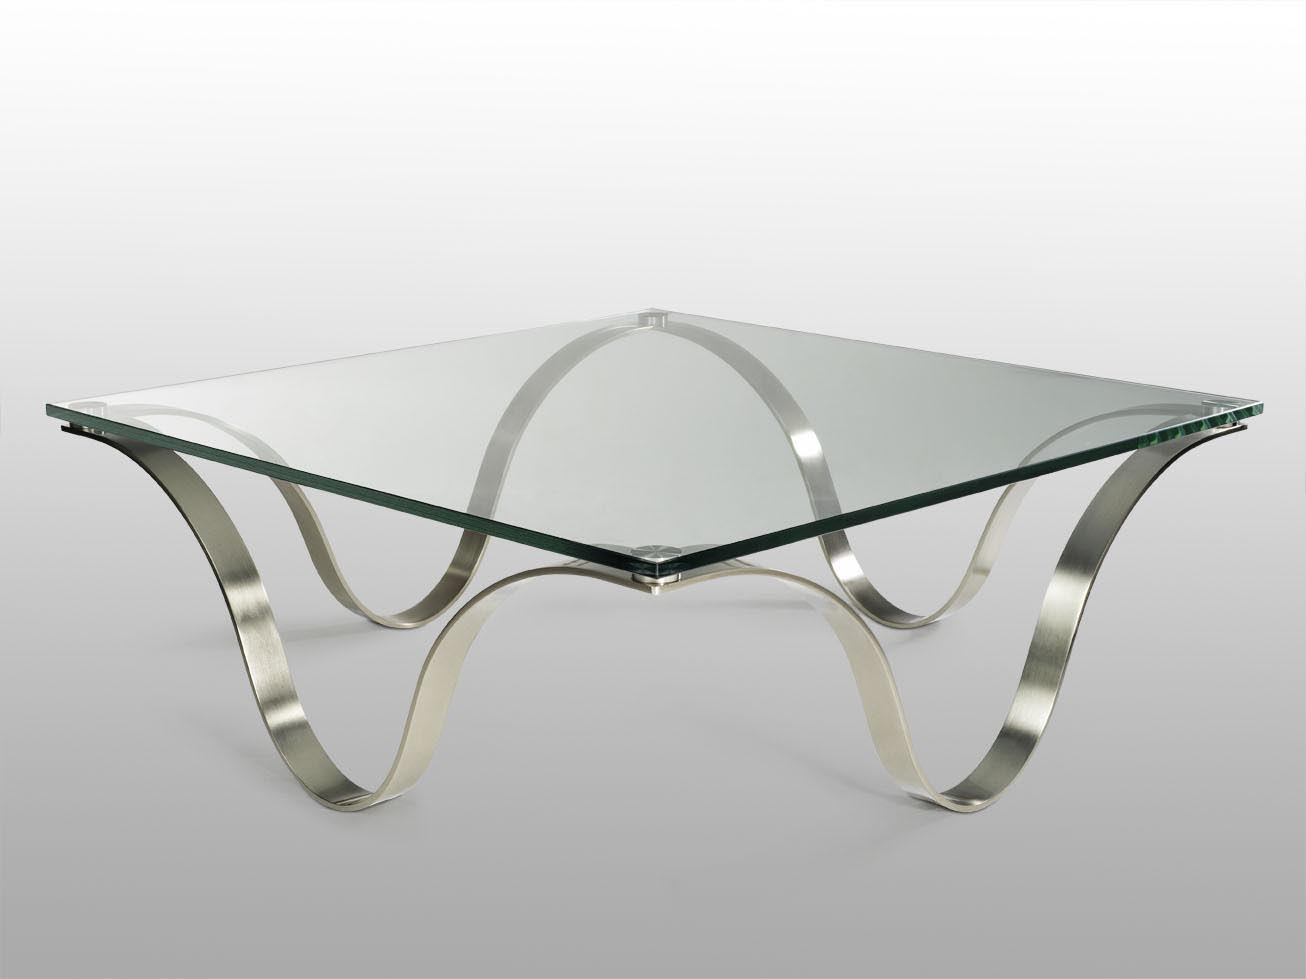 Couchtisch Rund Holz Metall Glass And Steel Coffee Table | Coffee Table Design Ideas